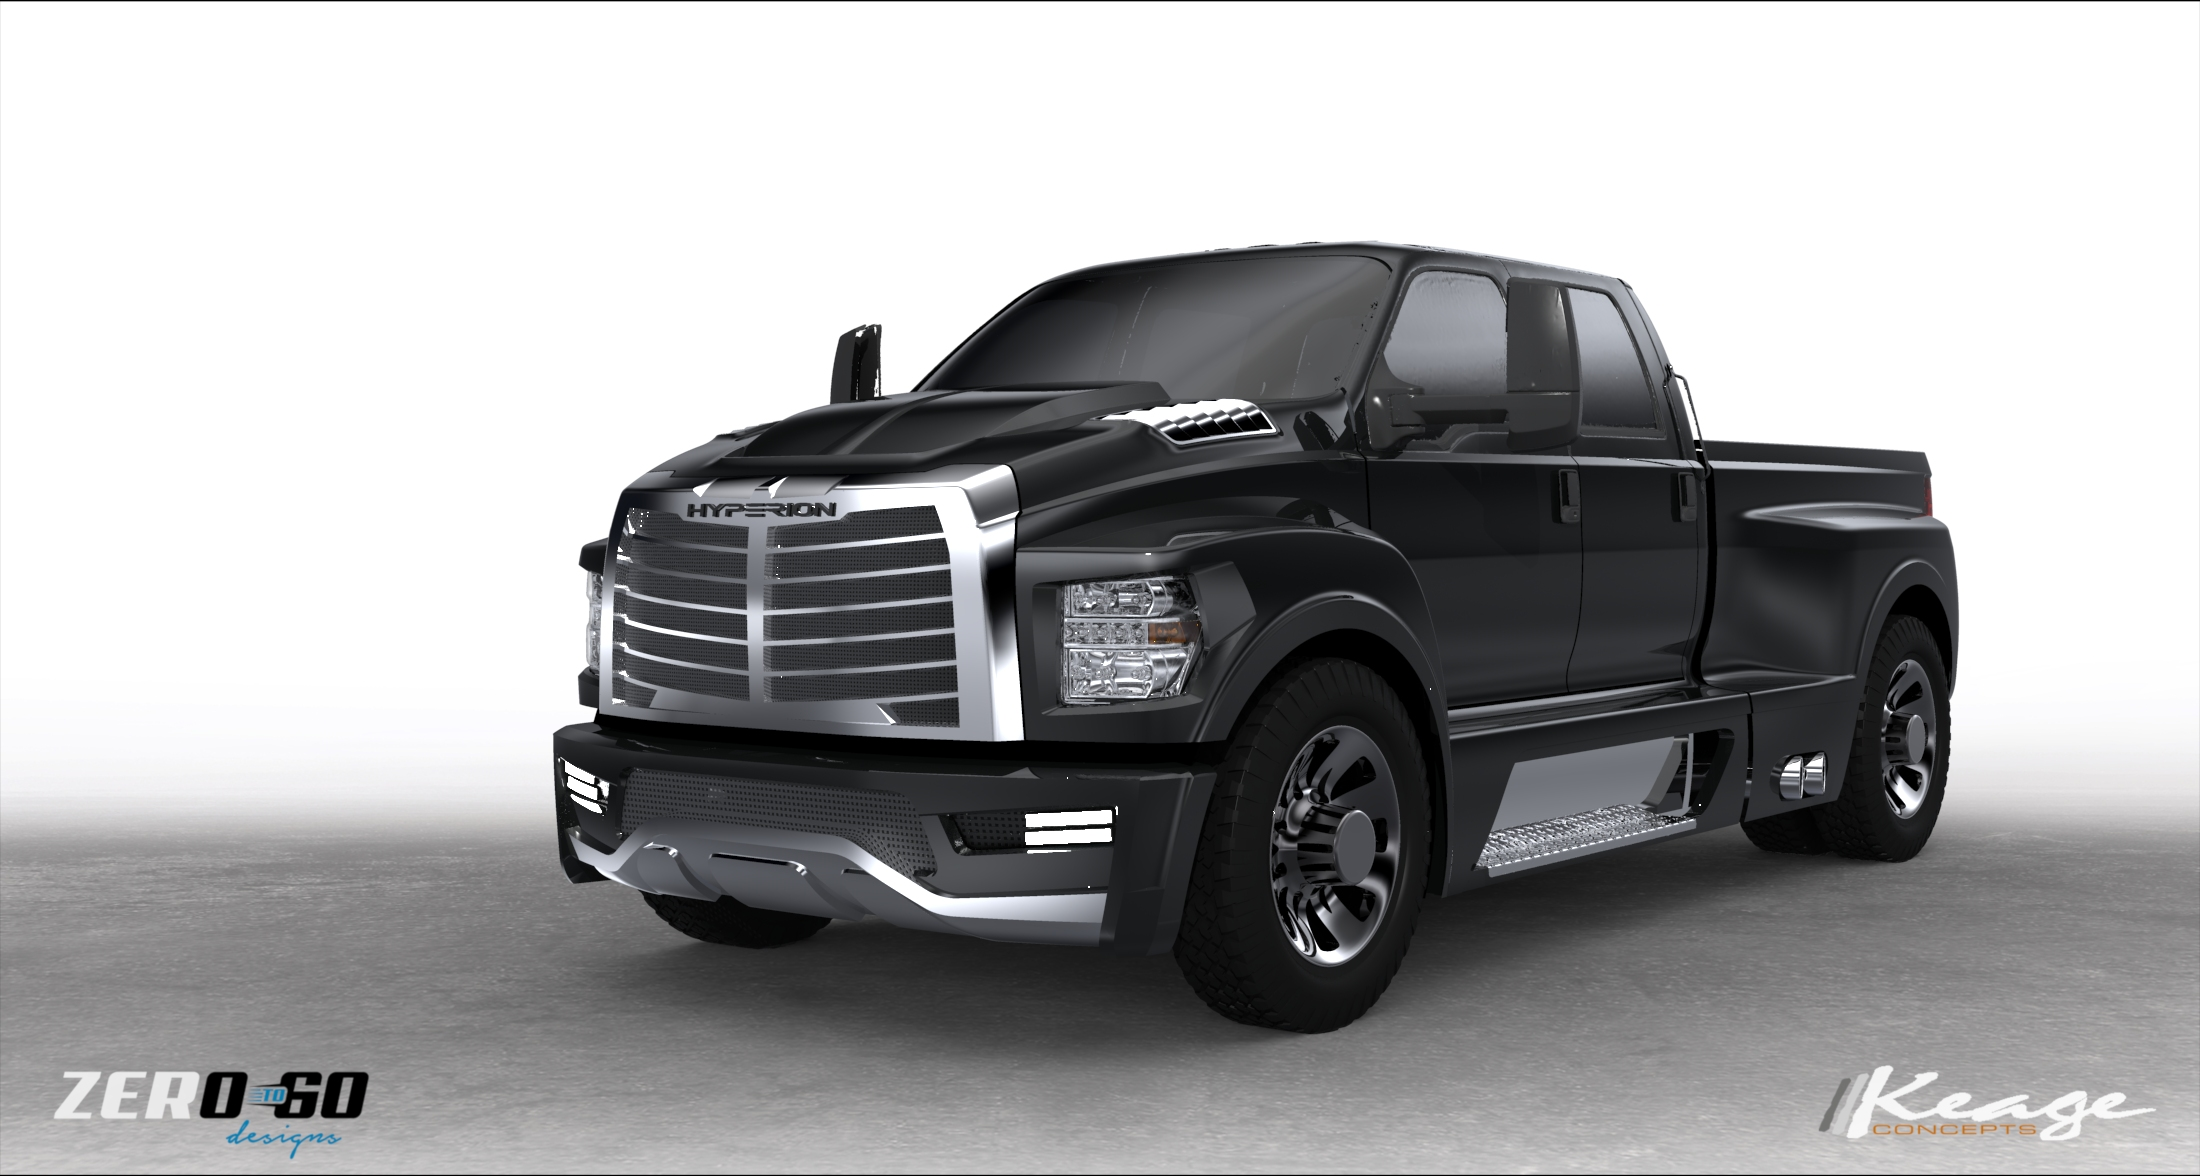 HYPERION F650 Keage Concepts